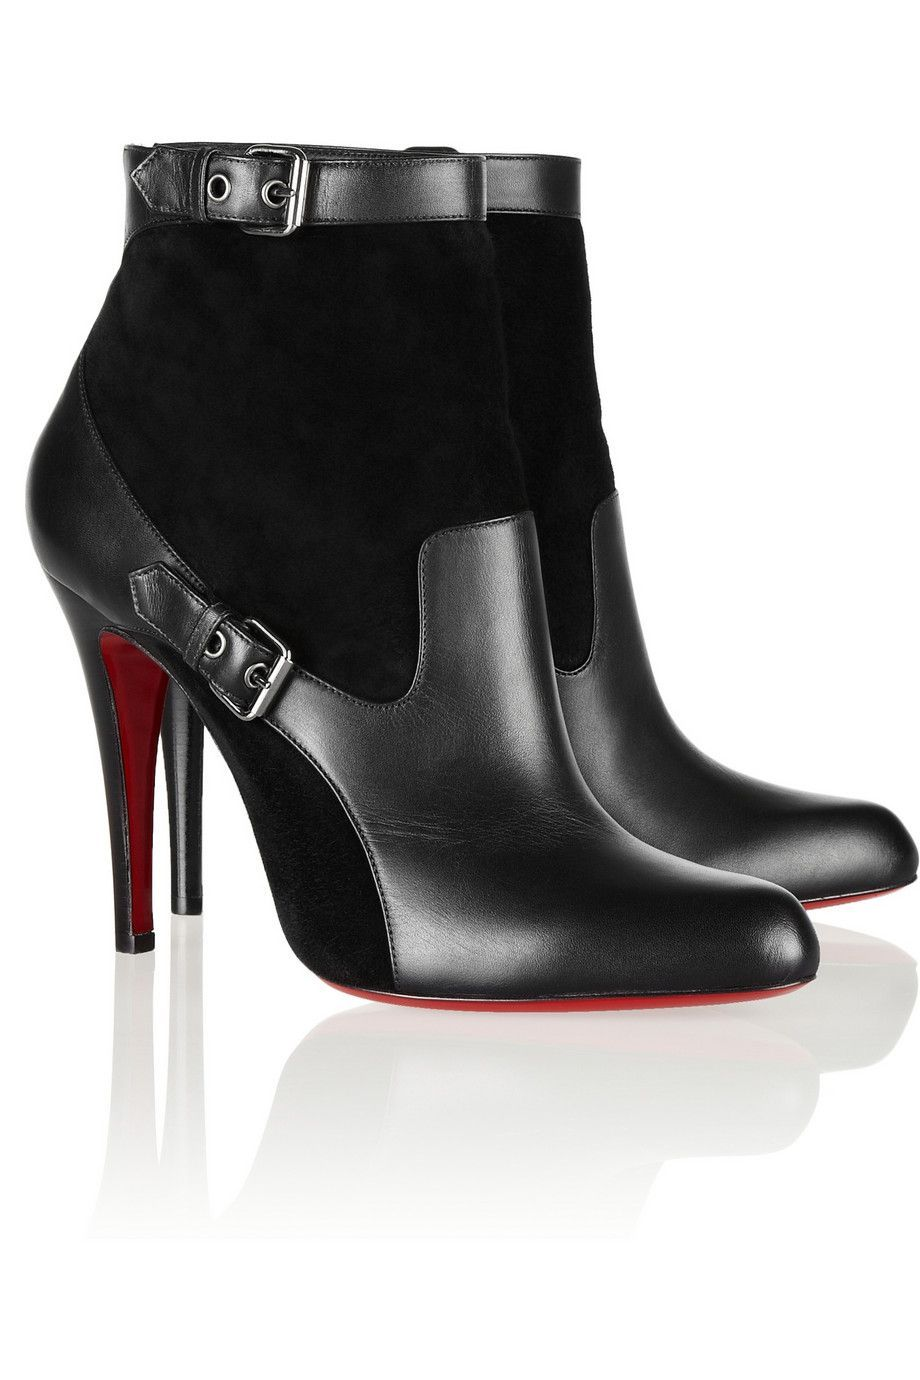 eb1a5d6866d6 Christian louboutin Canassone 100 Buckled Suede And Leather Ankle Boots in  Black